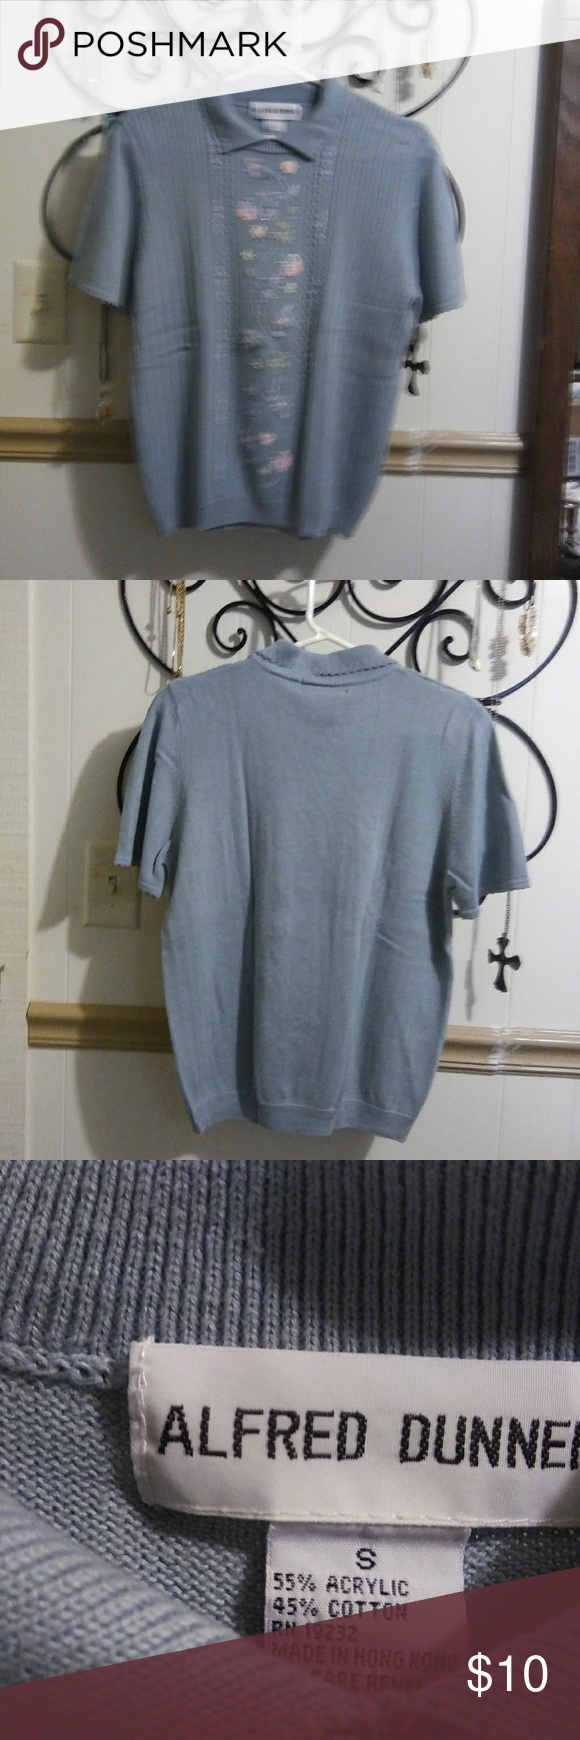 Alfred Dunner Top New no tags Tops Blouses